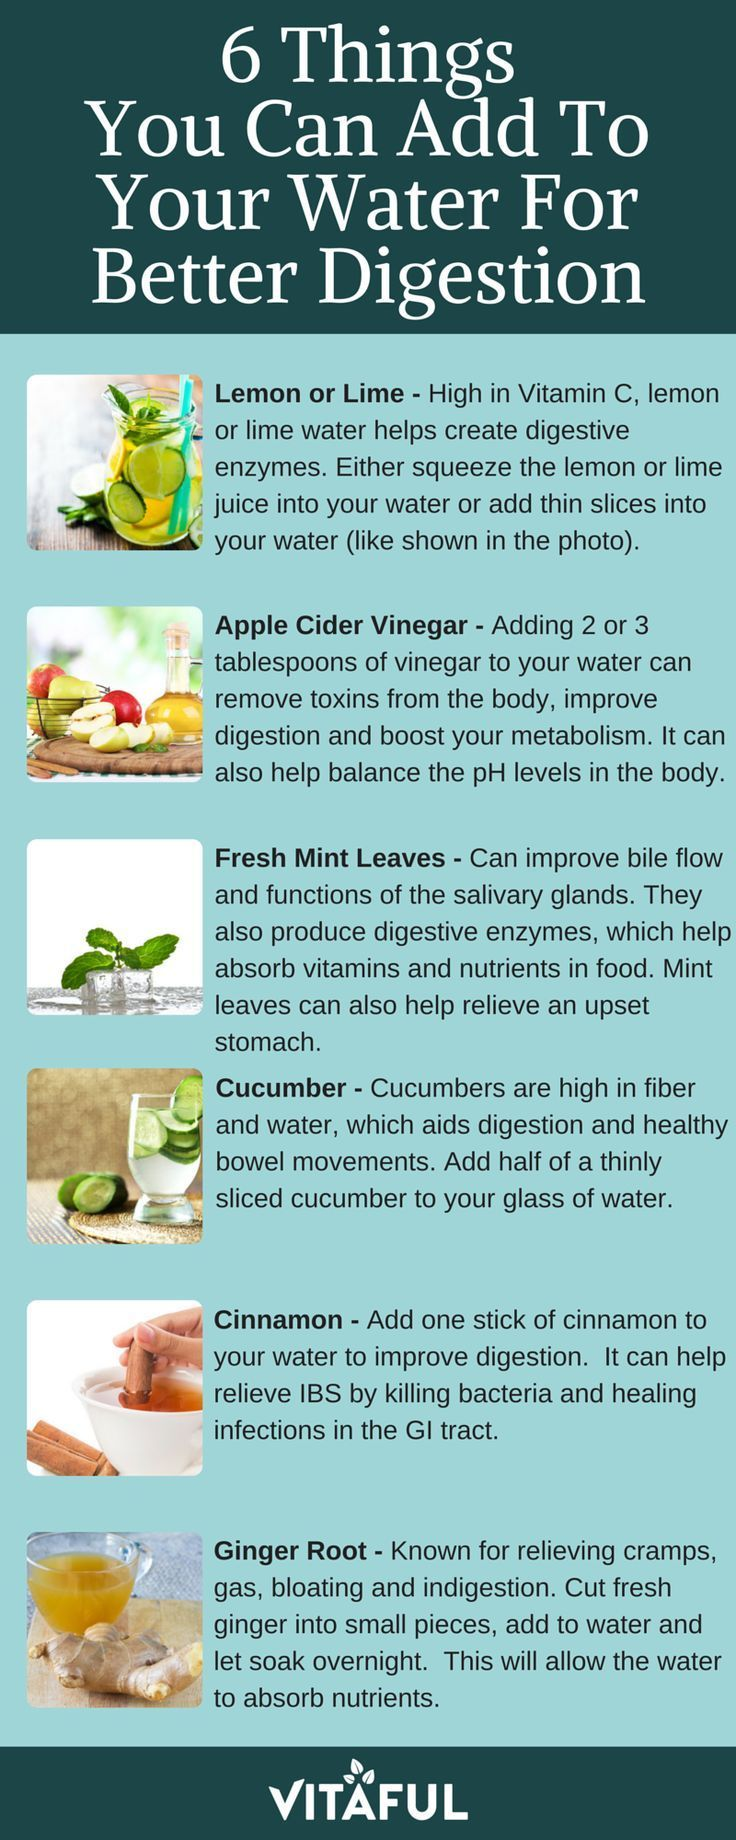 6 Things You Can Add To Your Water For Better Digestion | Detox Water | Gut Health |